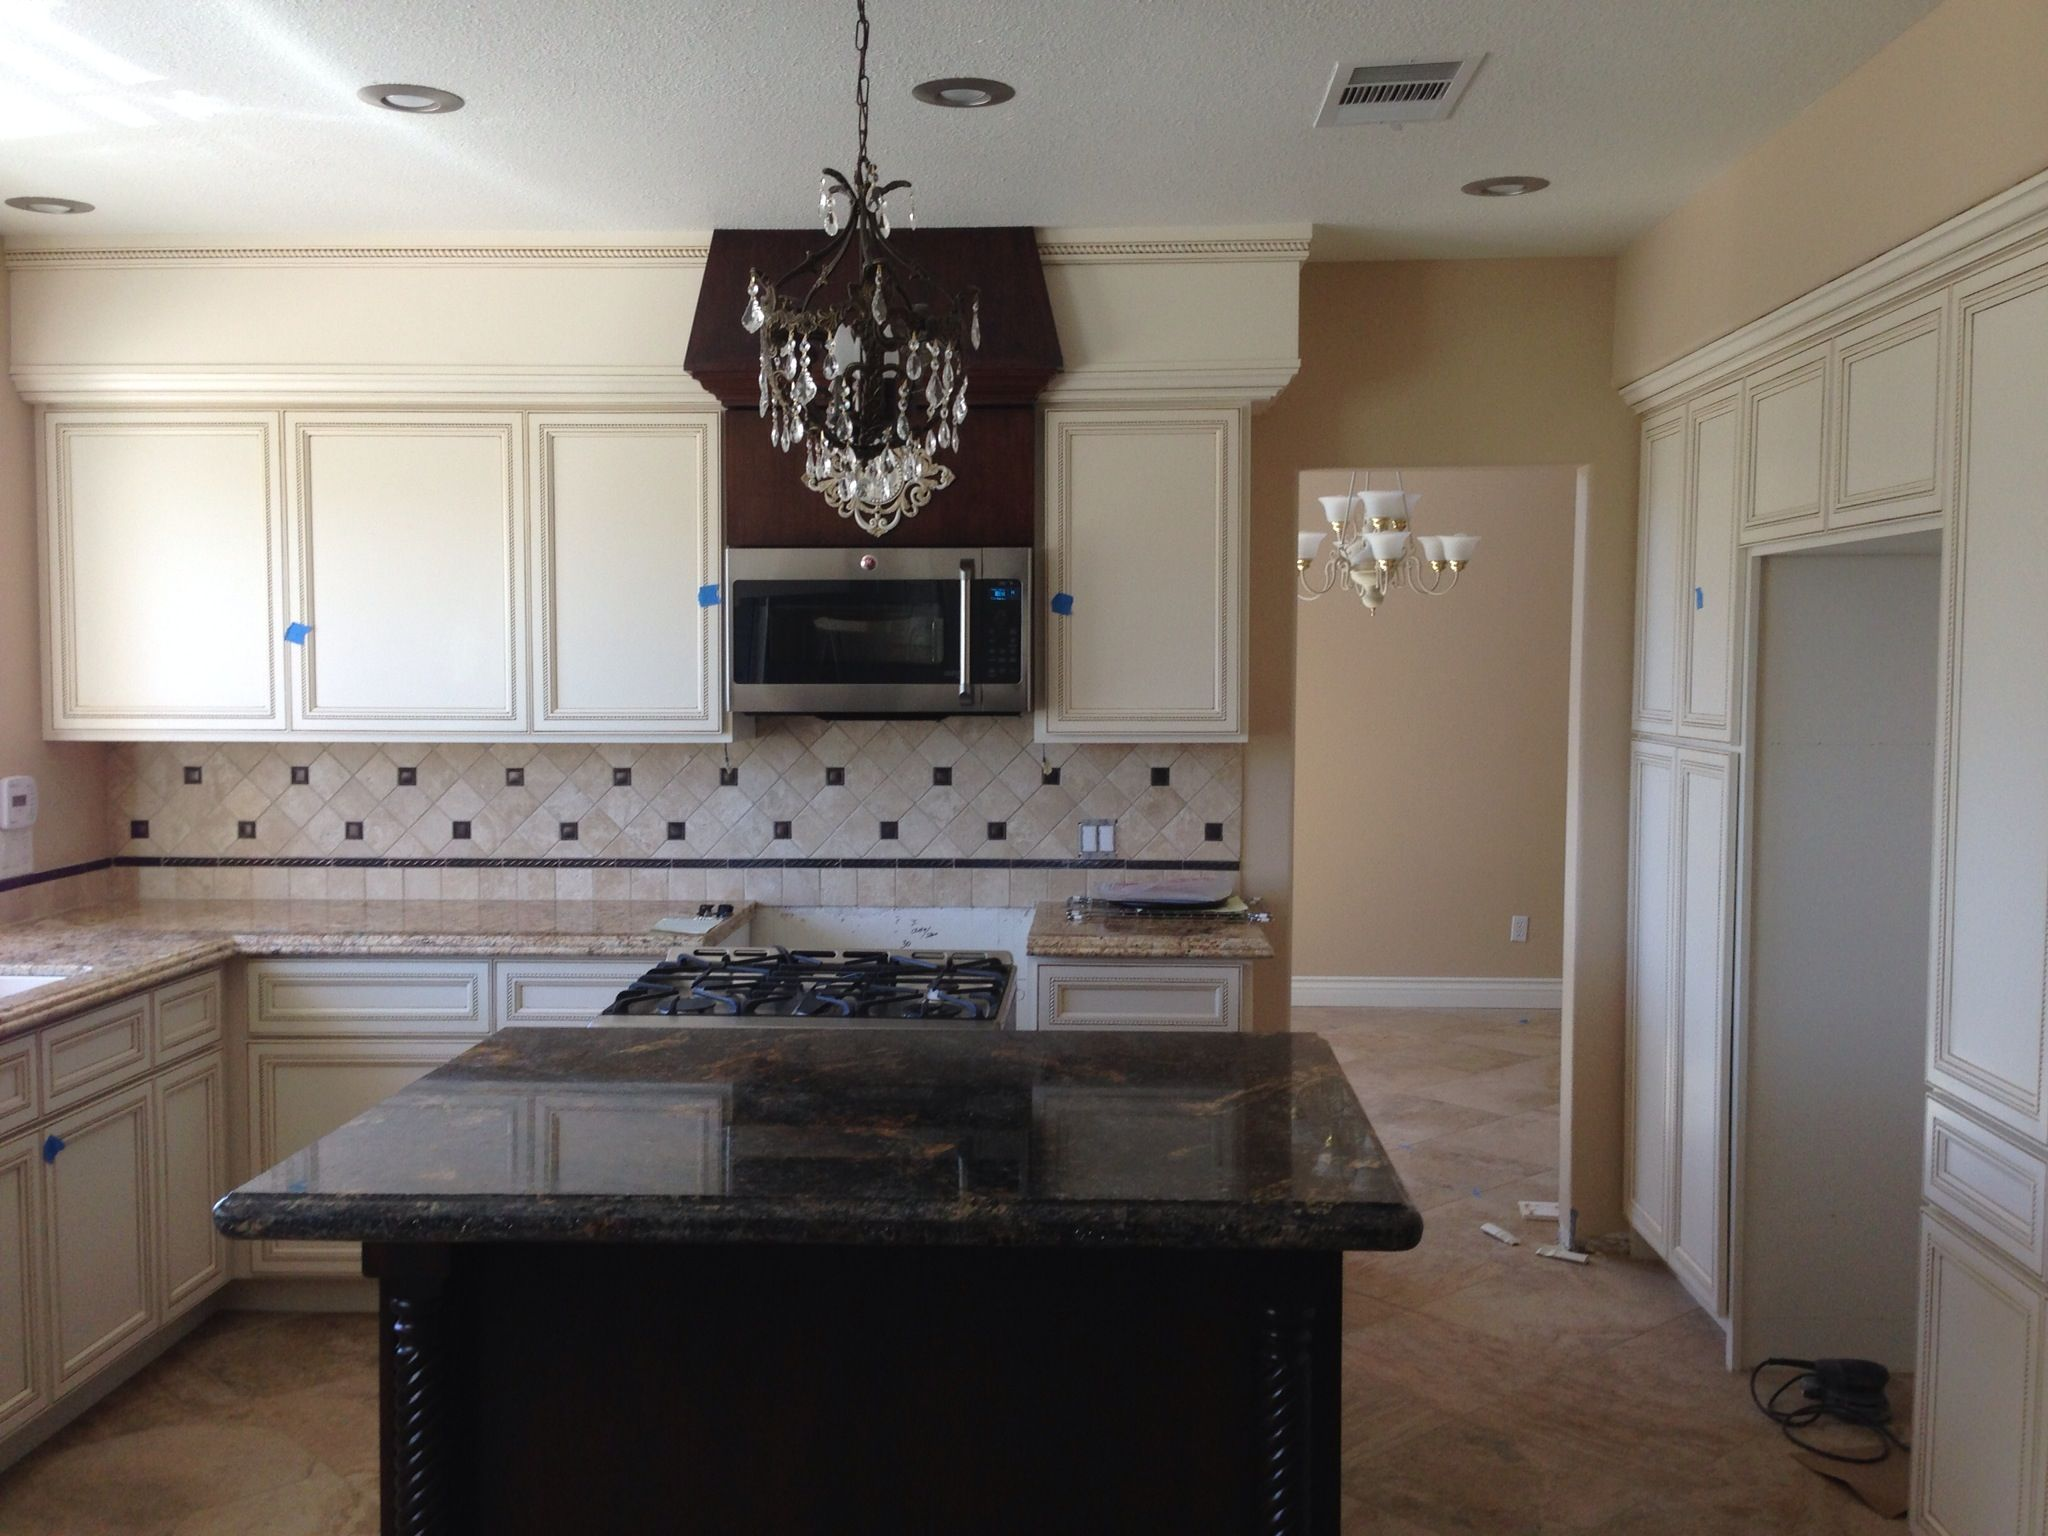 Chandelier check micro check granite u tile check now if we